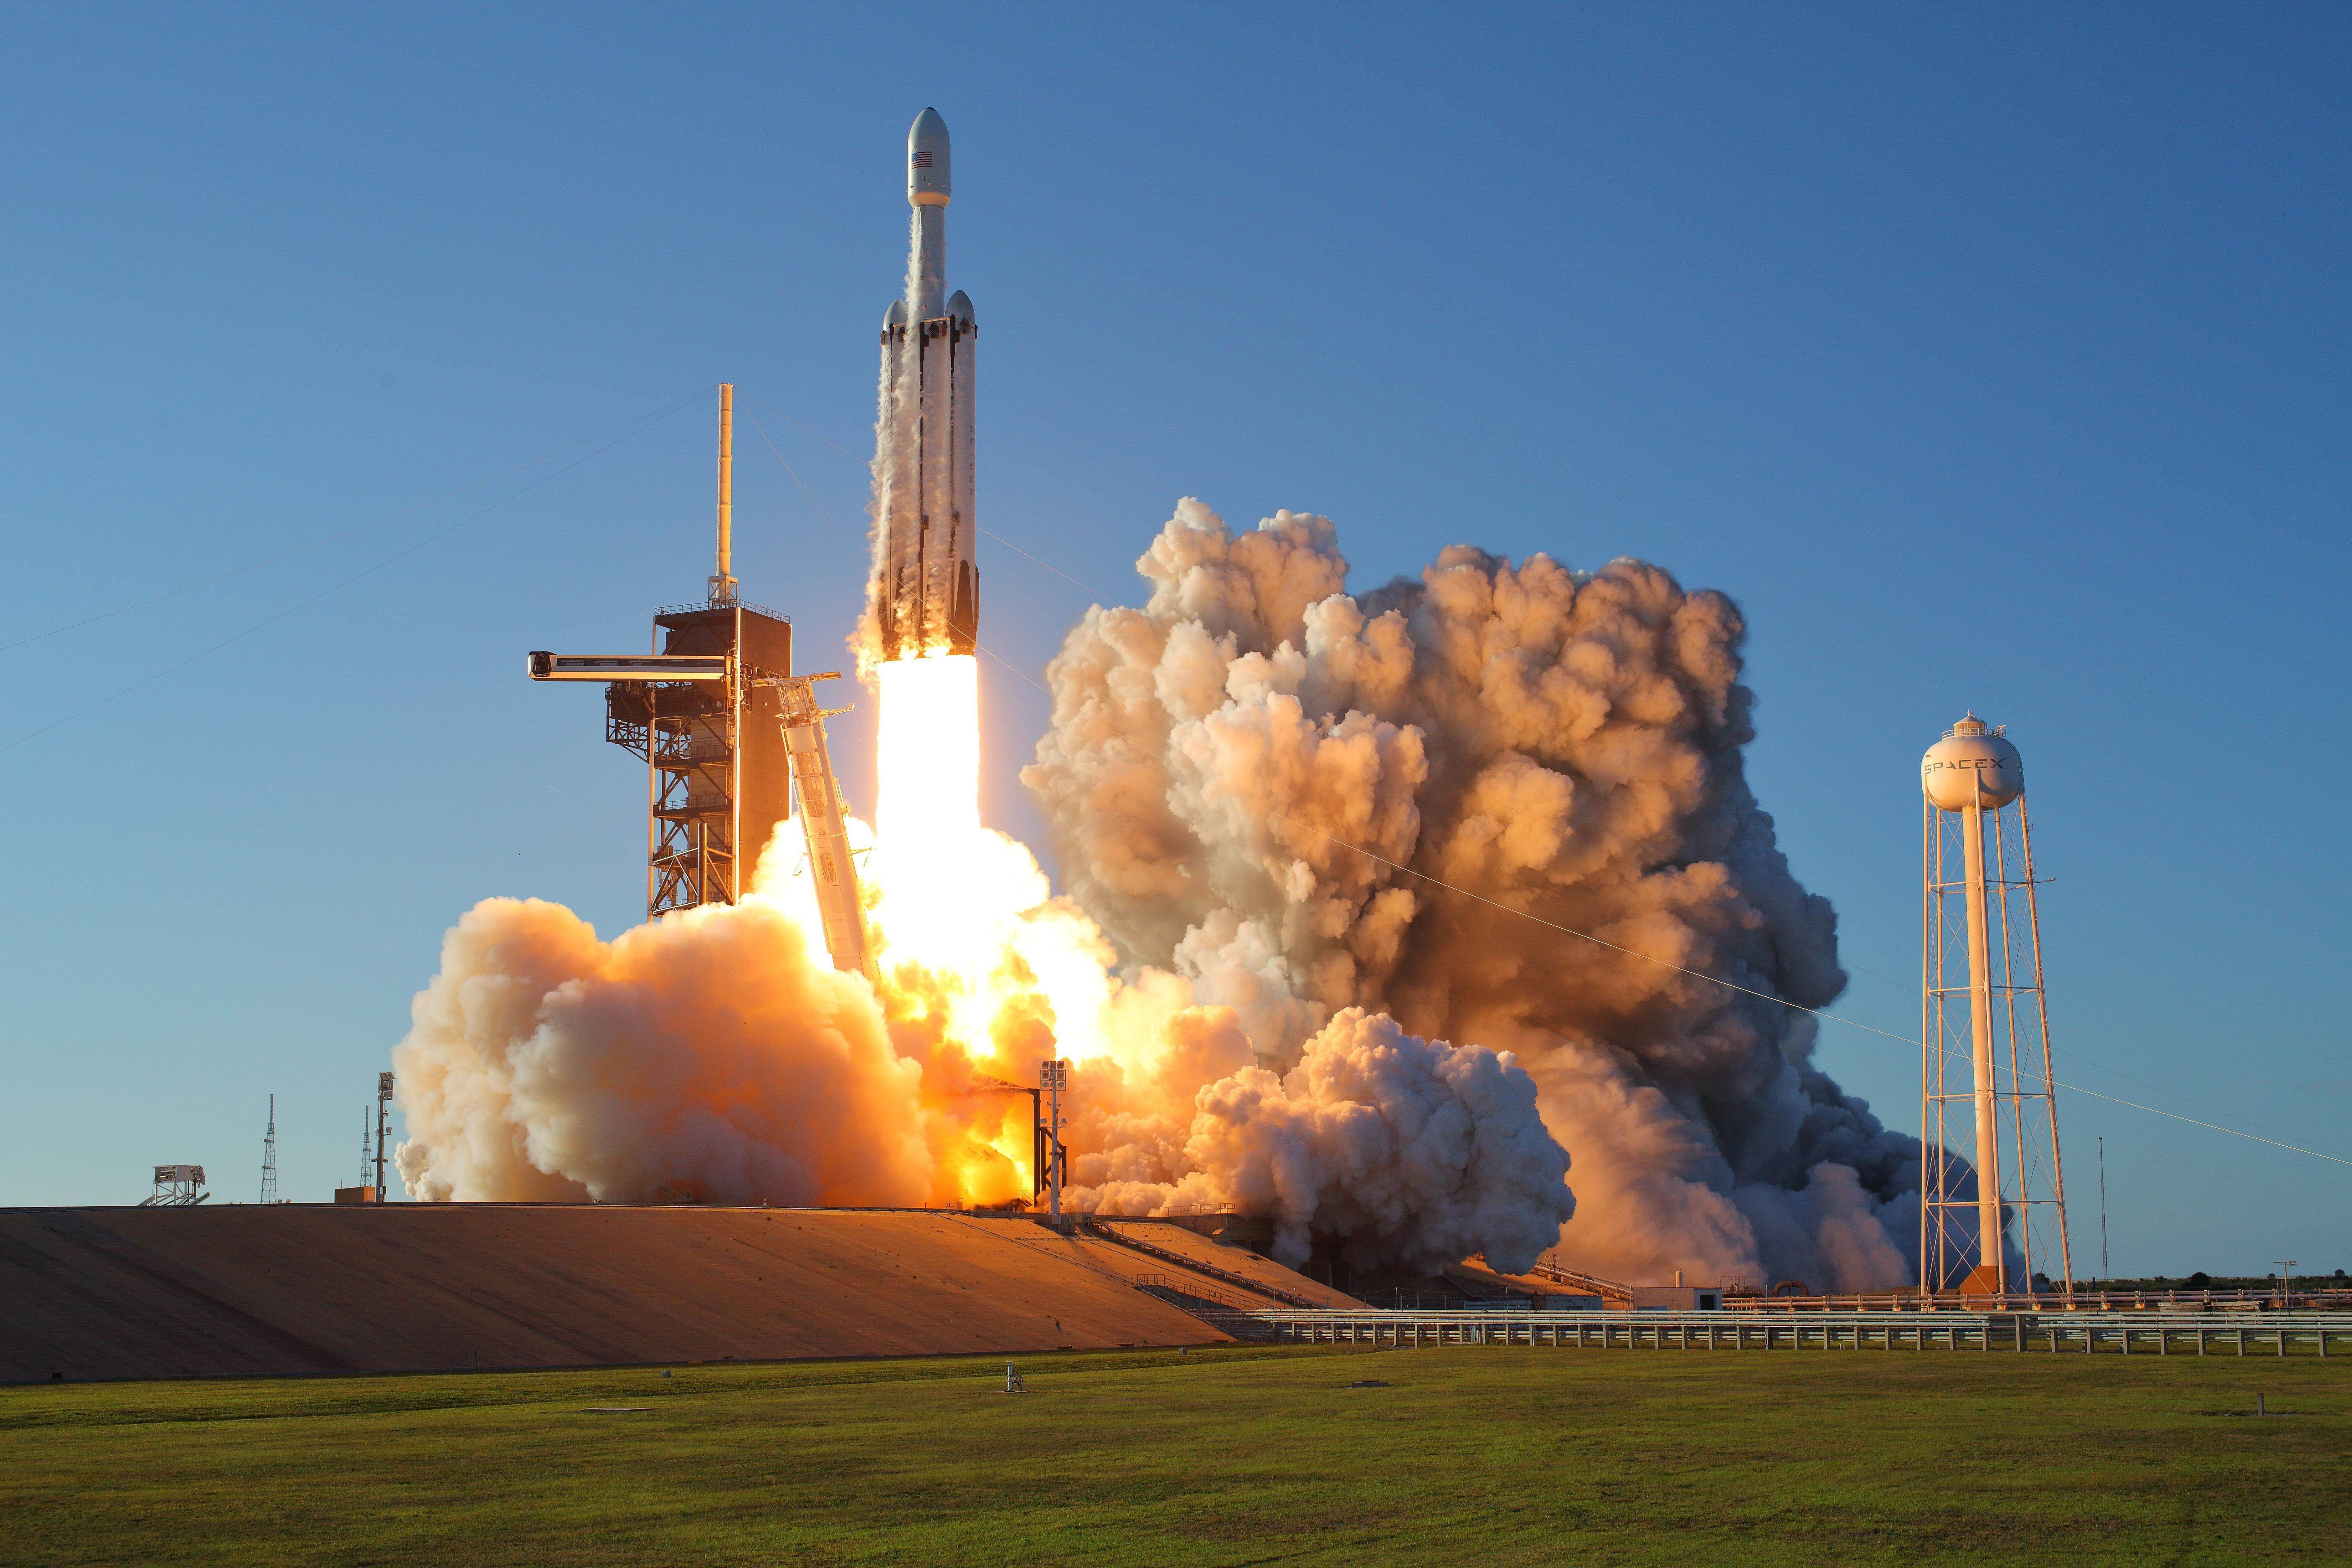 Usa Rocket Start Spacex Cape Canaveral Air Force Station Falcon Heavy Arabsat 6a 5k Wallpaper Hdwallpaper Desktop Spacex Cape Canaveral Hd Wallpaper